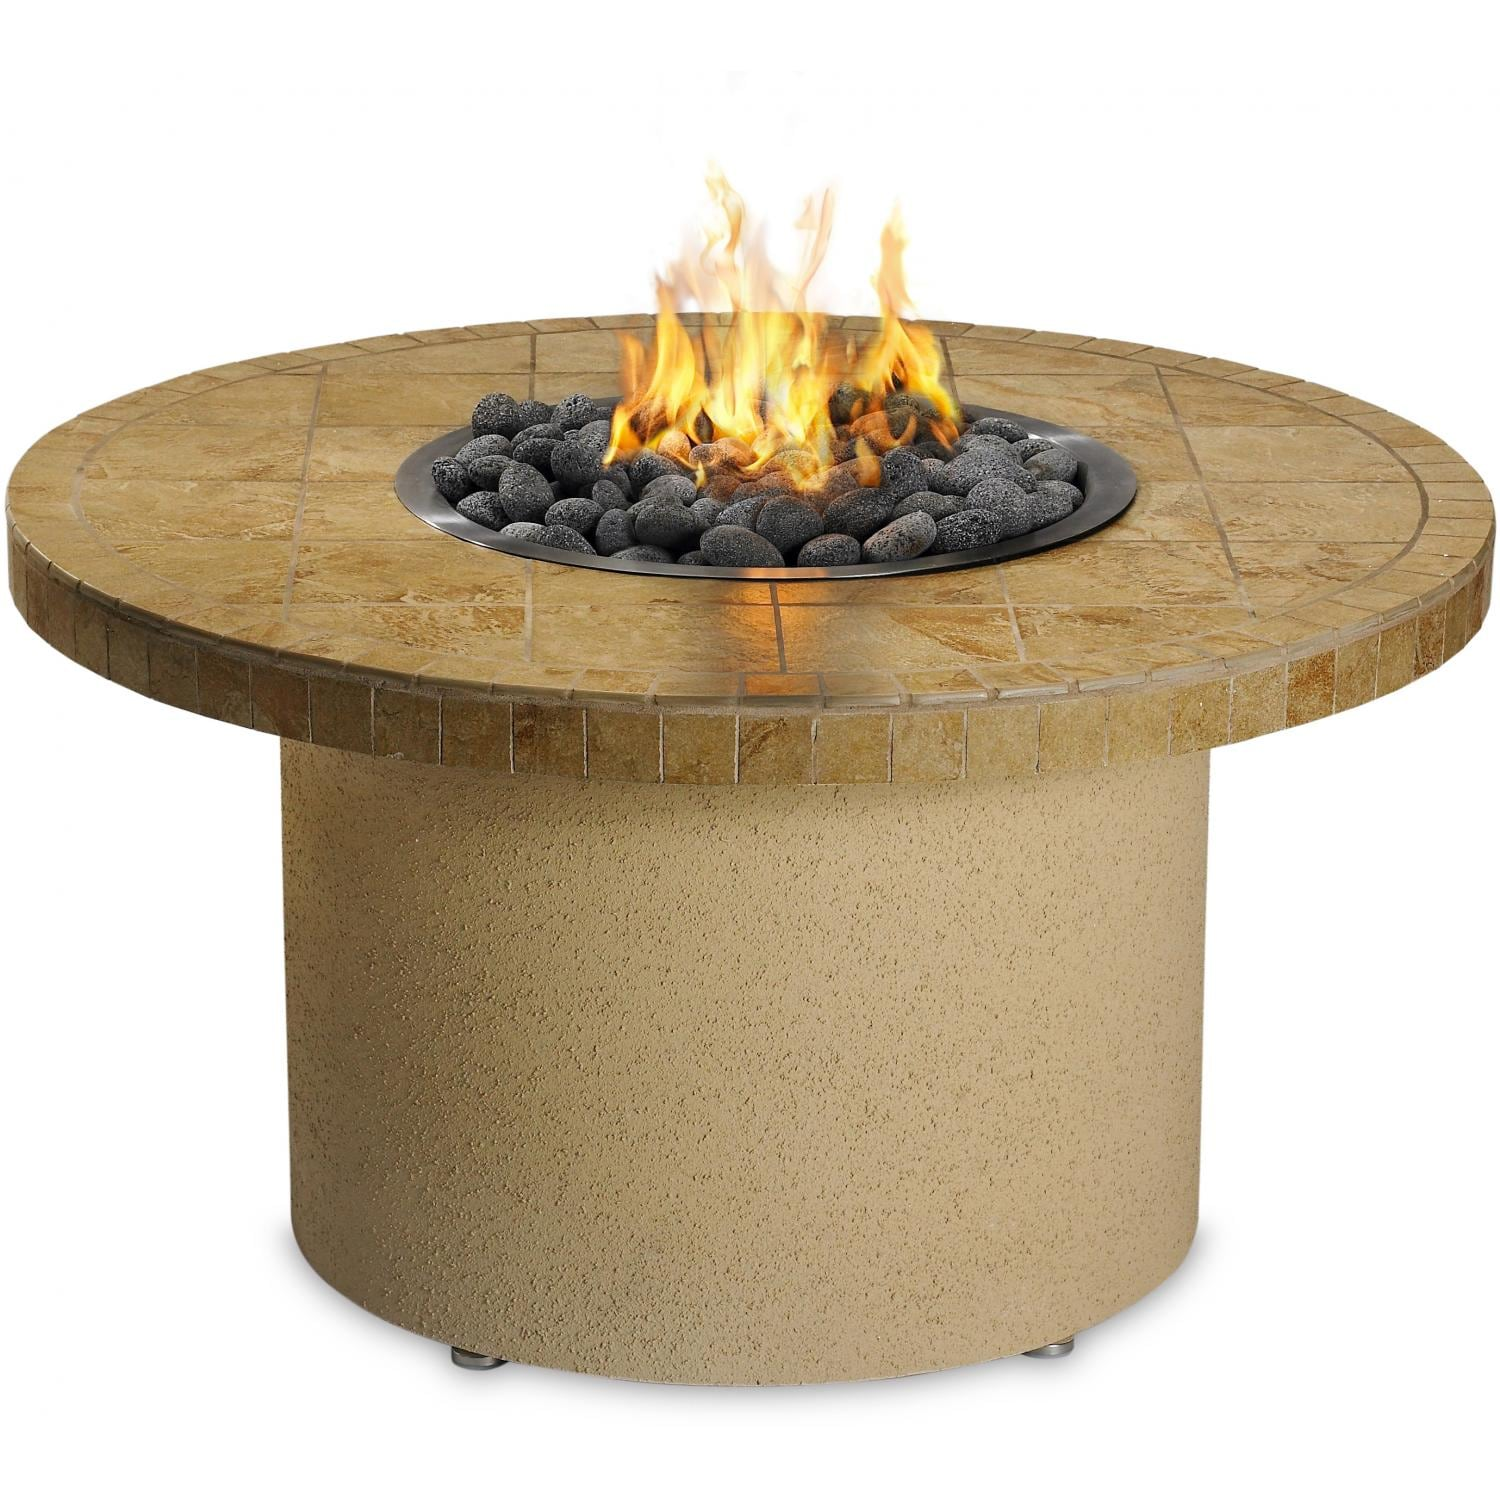 Awesome Sedona By Lynx 44 Inch Round Propane Ice N Fire Pit   Sandalwood